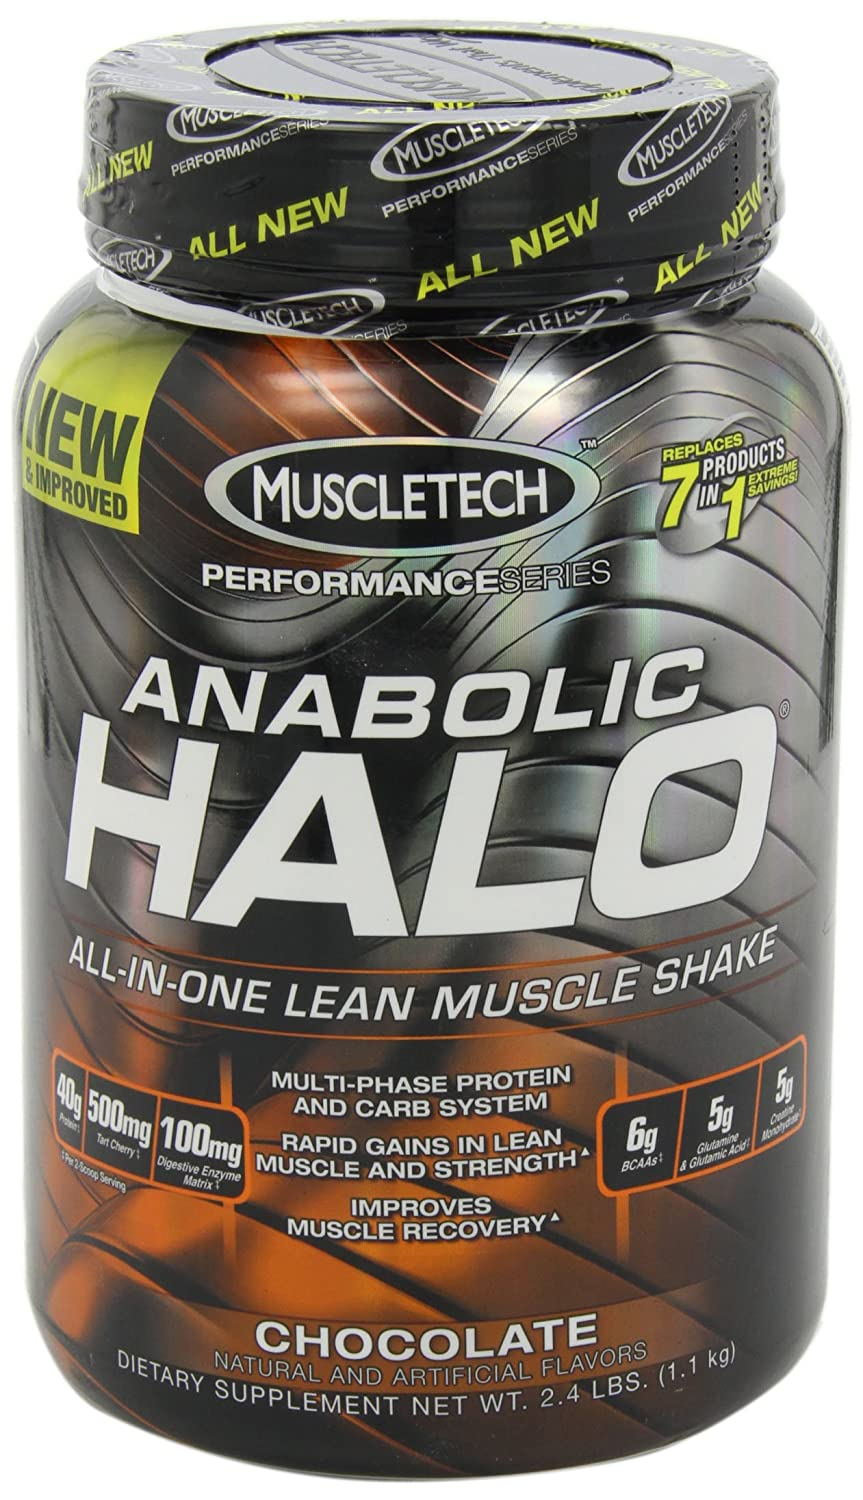 MuscleTech Anabolic Halo, All-in-One Lean Muscle Shake, Chocolate, 2.5 lbs (1.14kg)